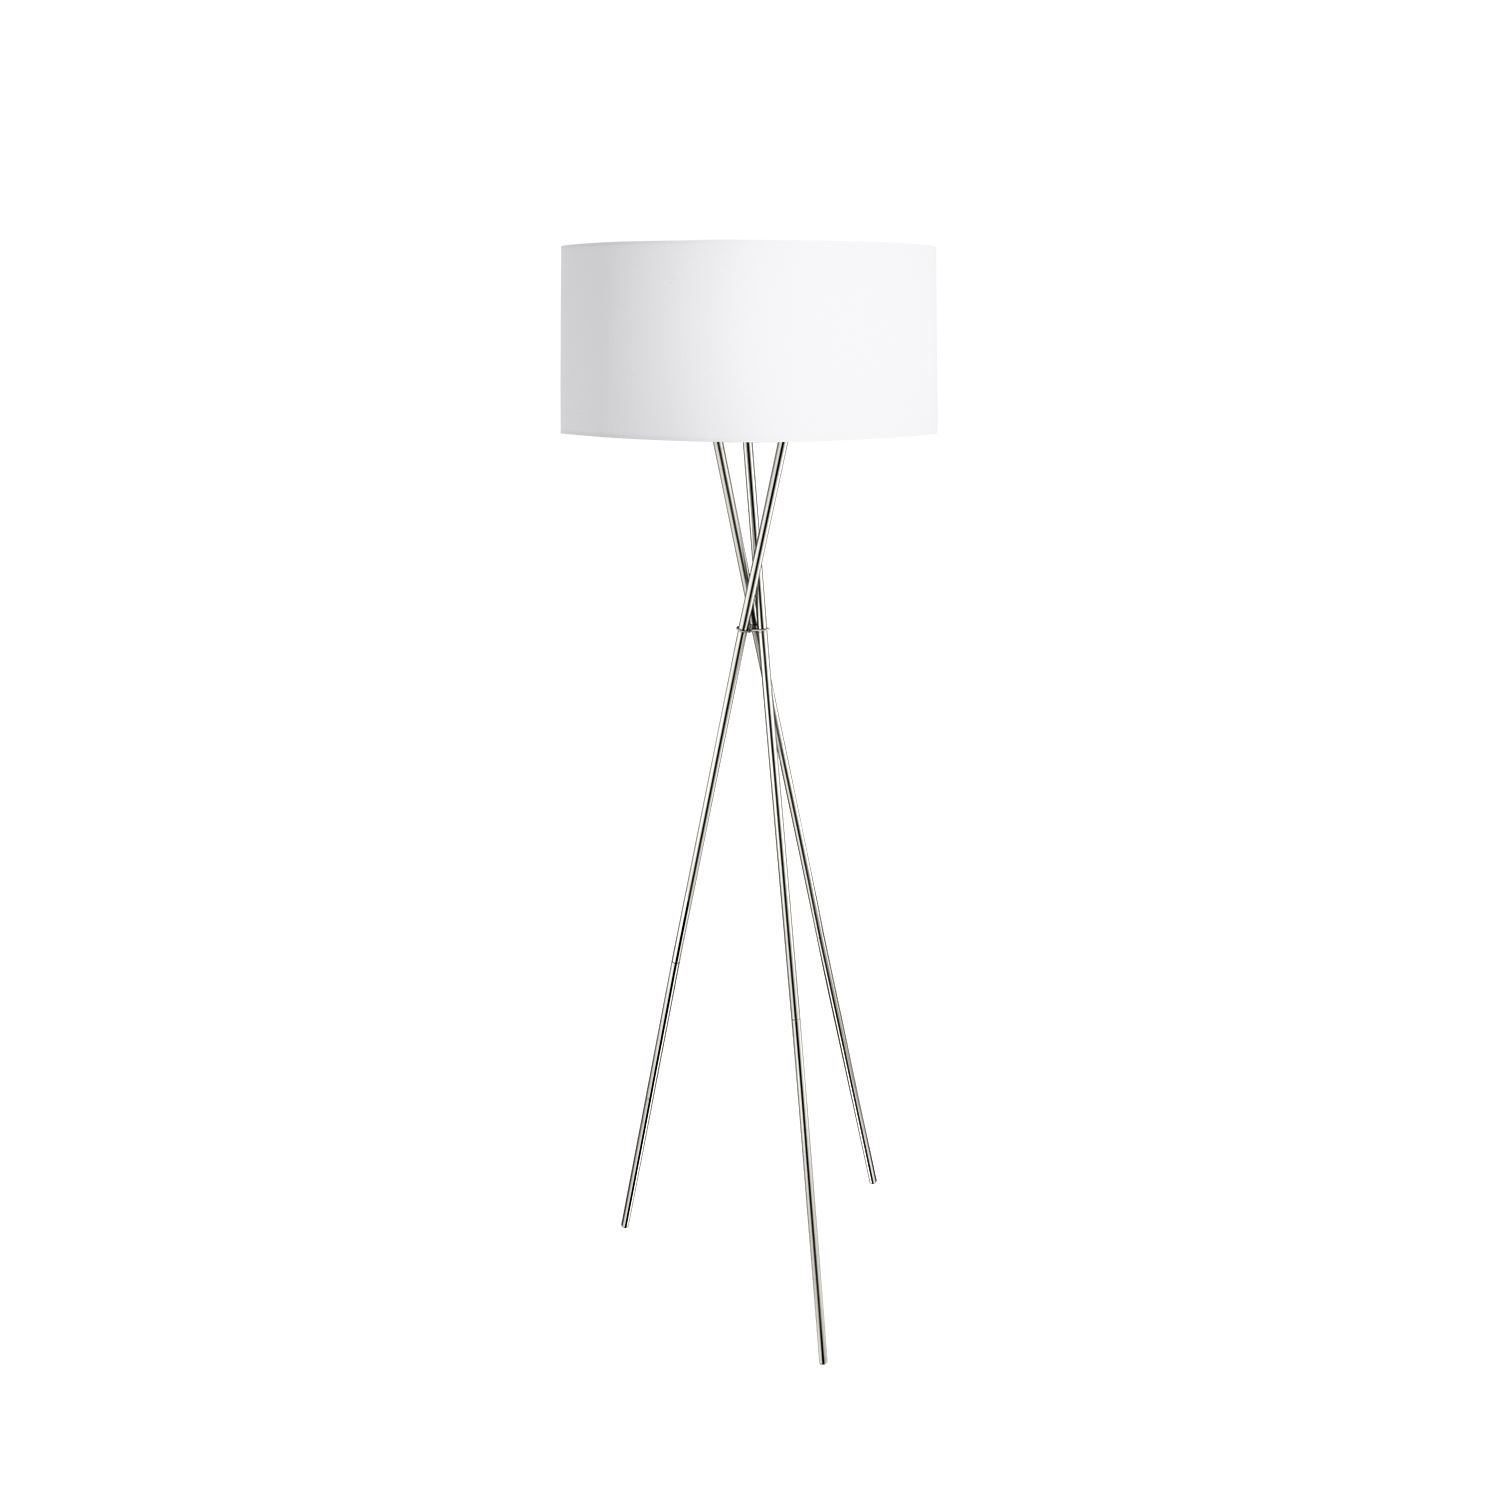 Fondachelli Floor Lamp 1 Light White, Silver Fabric Shade Foot-Switch